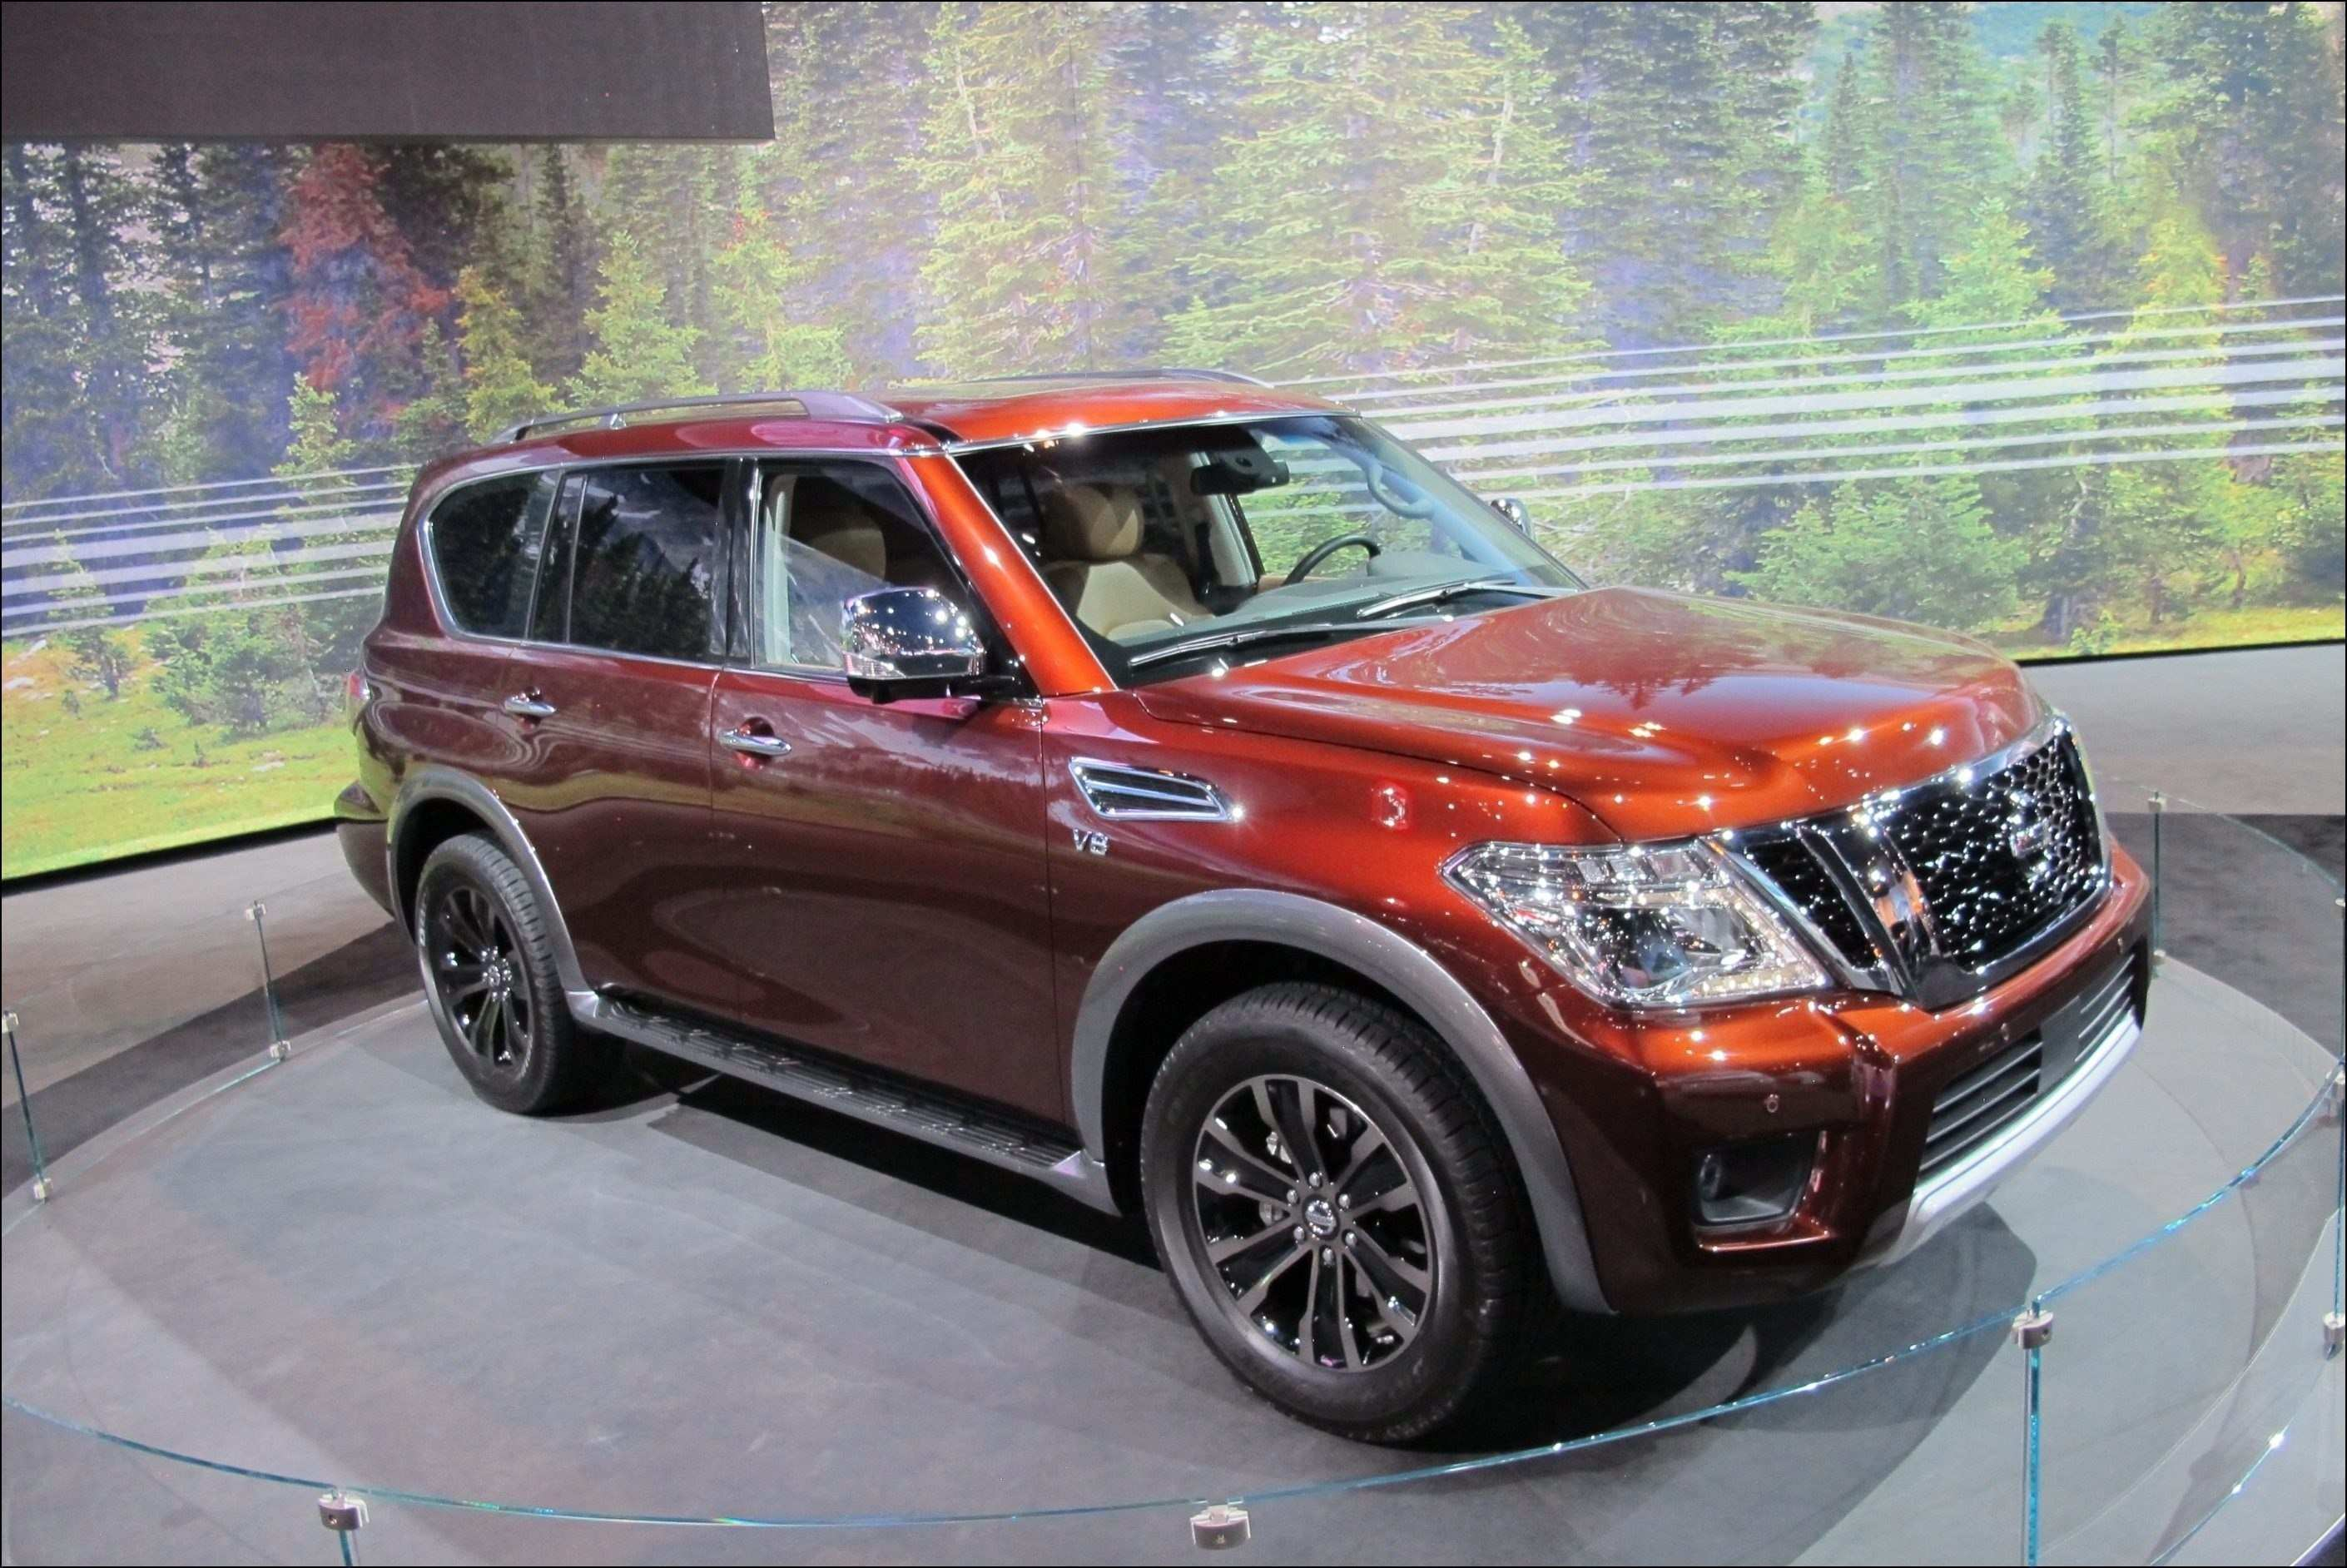 74 All New 2020 Nissan Armada Review for 2020 Nissan Armada